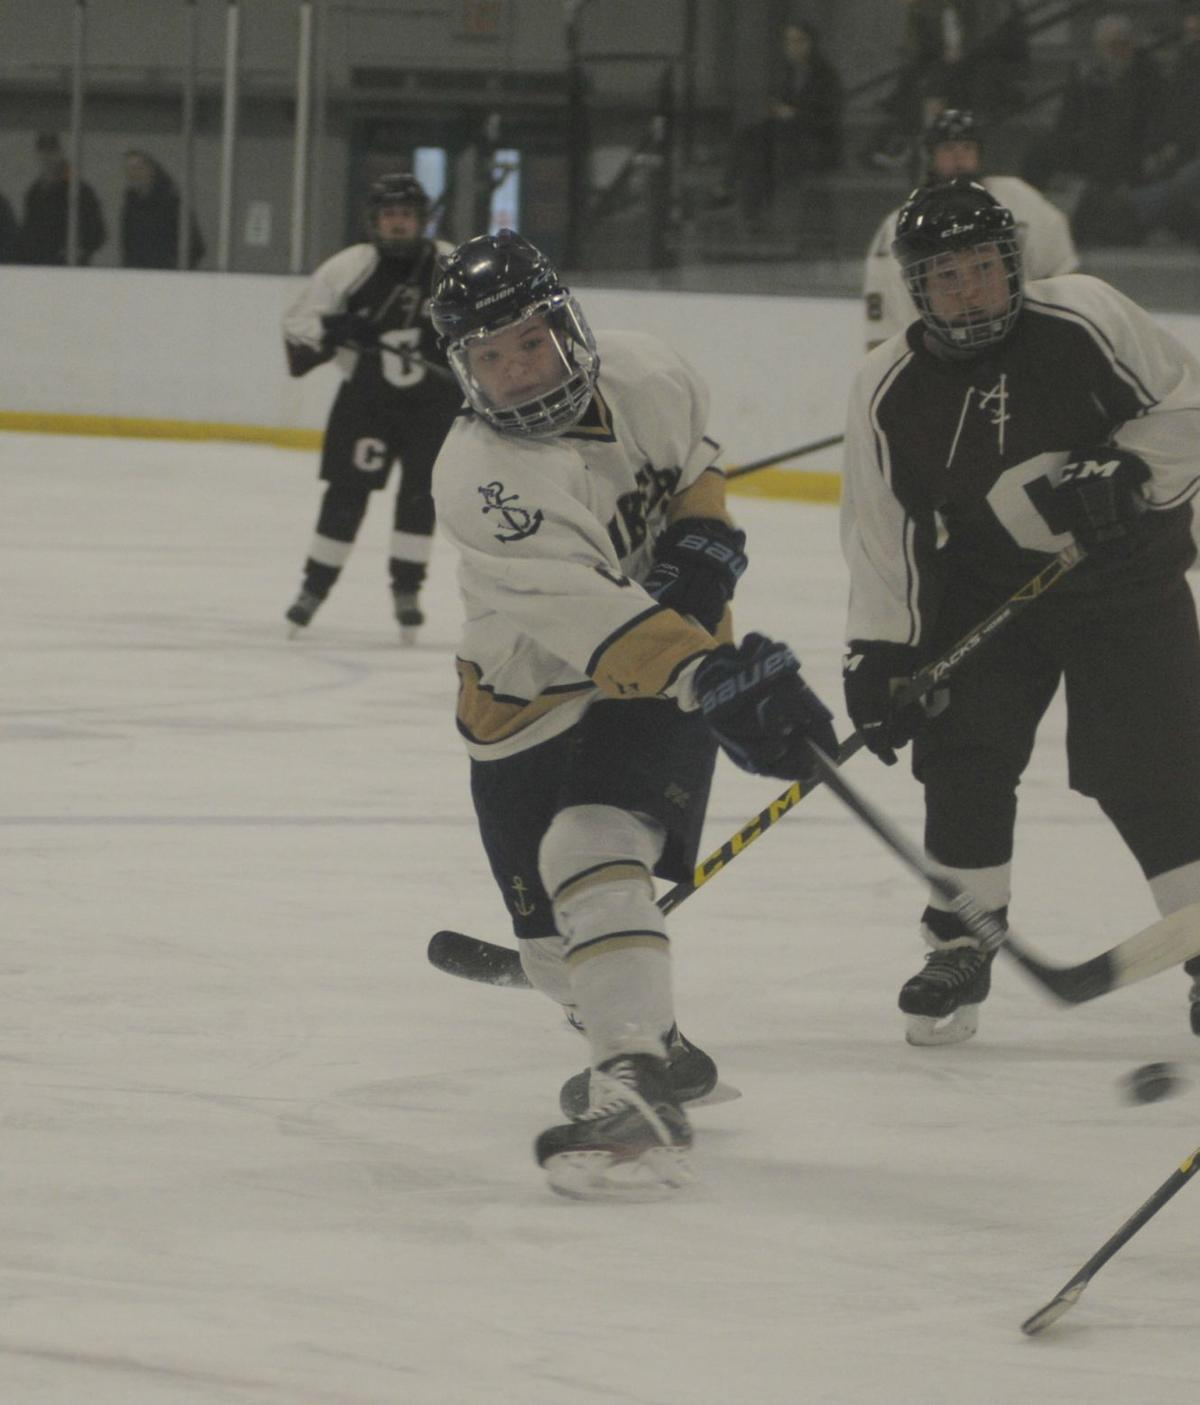 skaneateles girls hockey captures section championship lakers hits misses union springs service dog fundraiser auburn inmate violence skaneateles girls